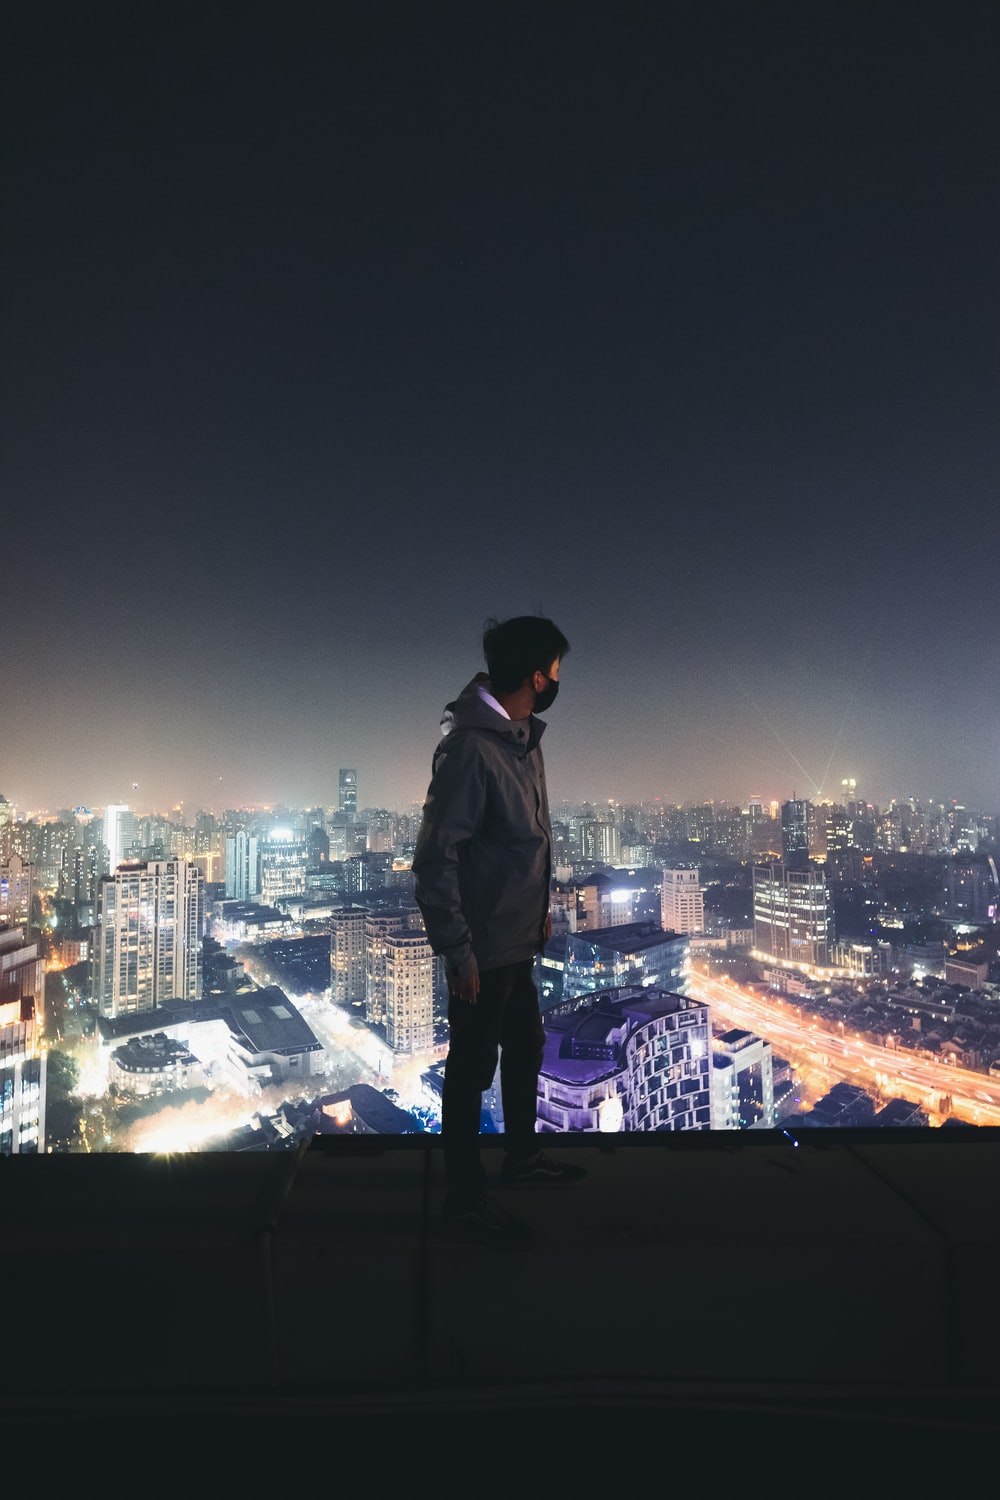 man in gray jacket watching high-rise buildings